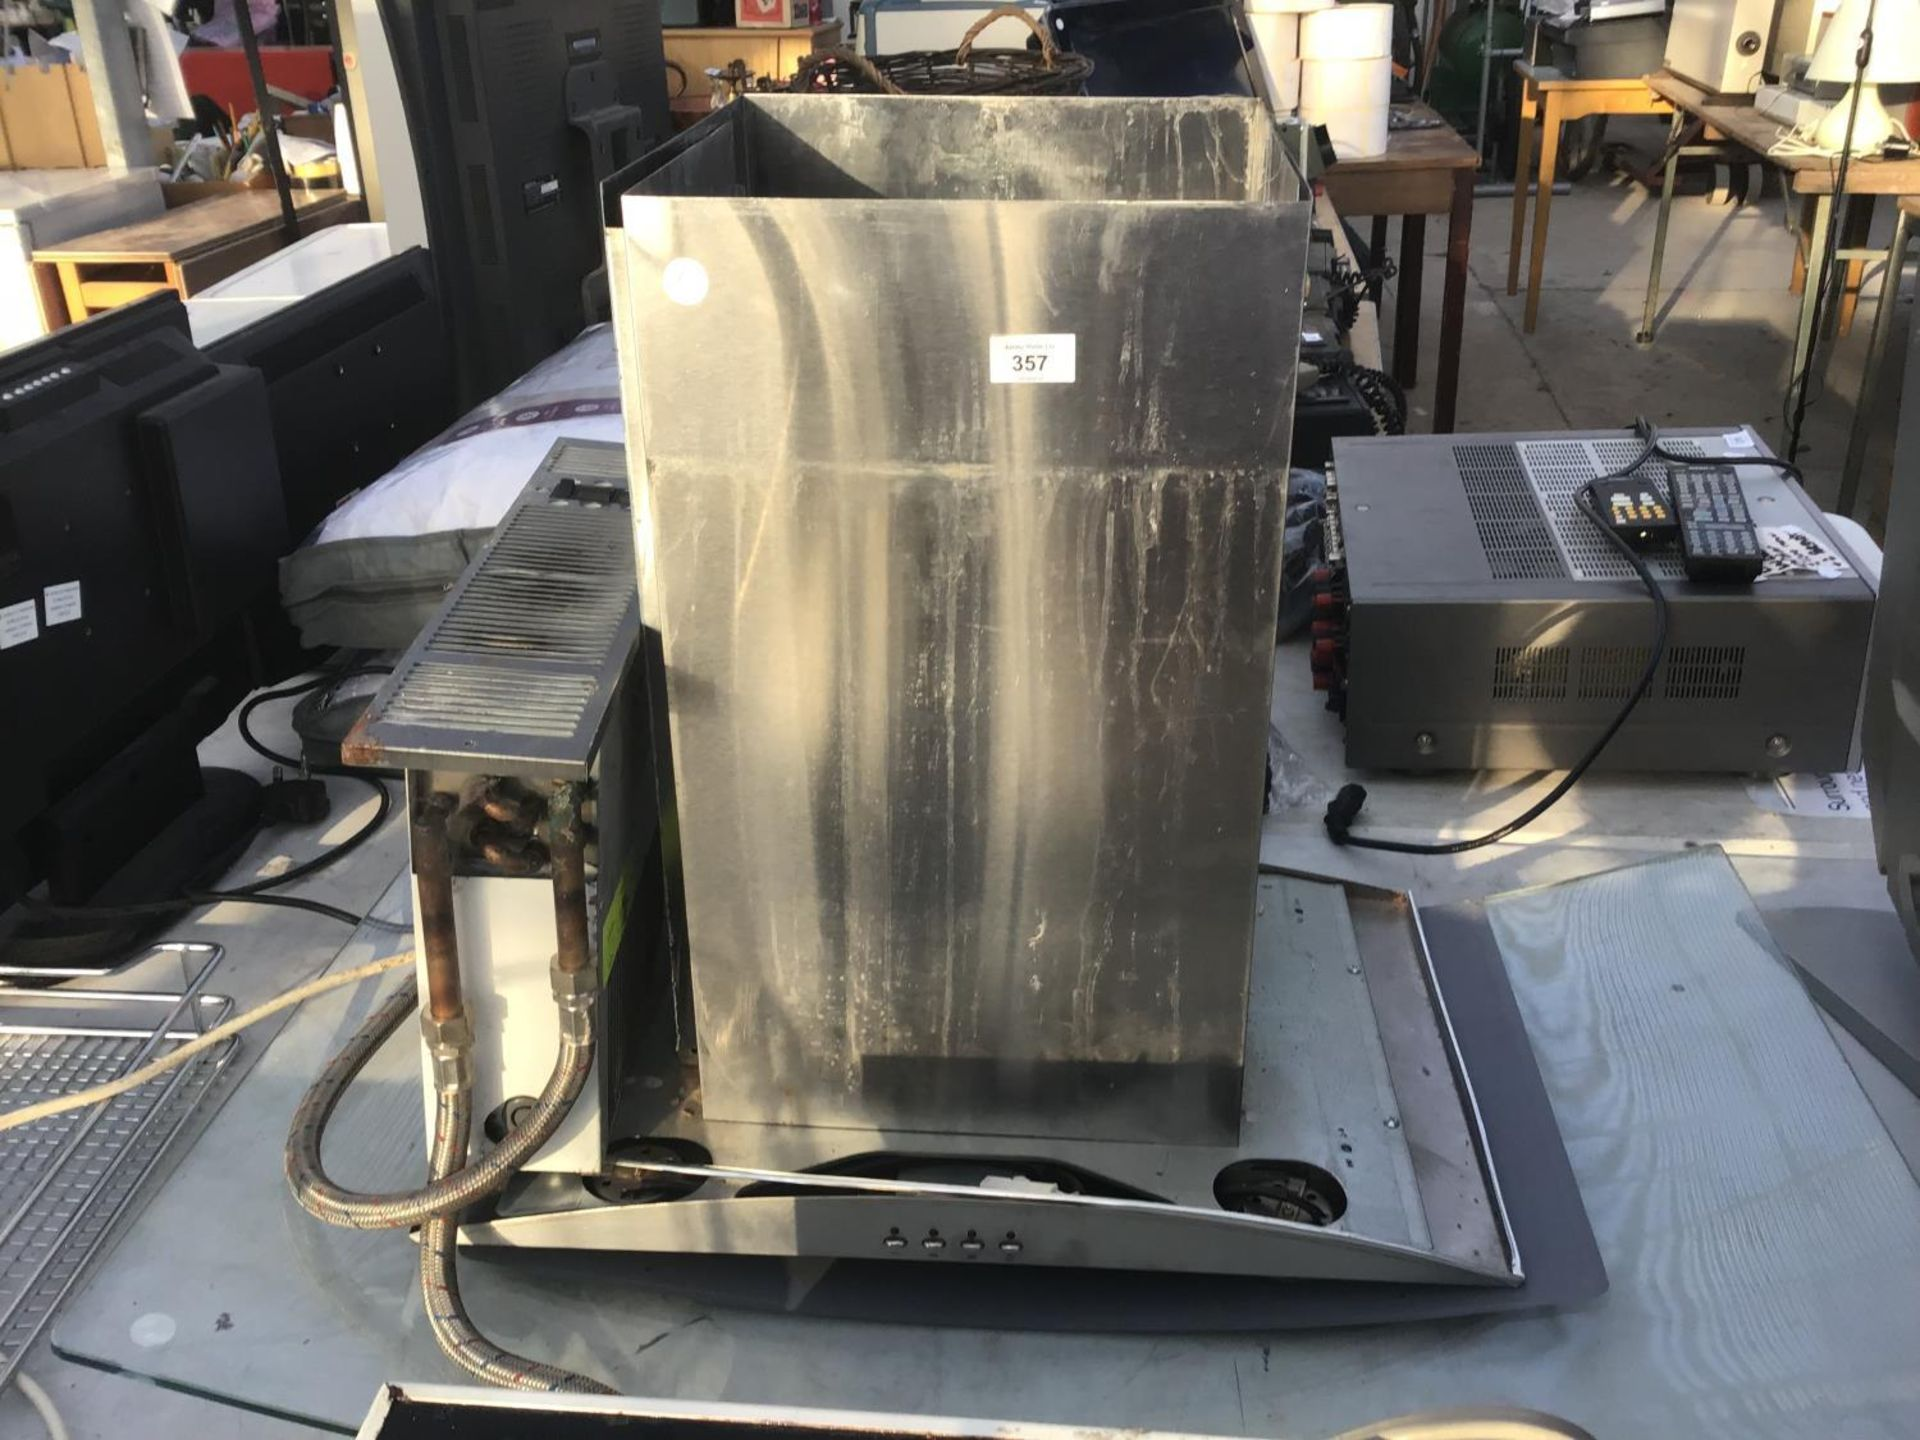 Lot 357 - A COOKER HOOD WITH GLASS FITMENT IN WORKING ORDER